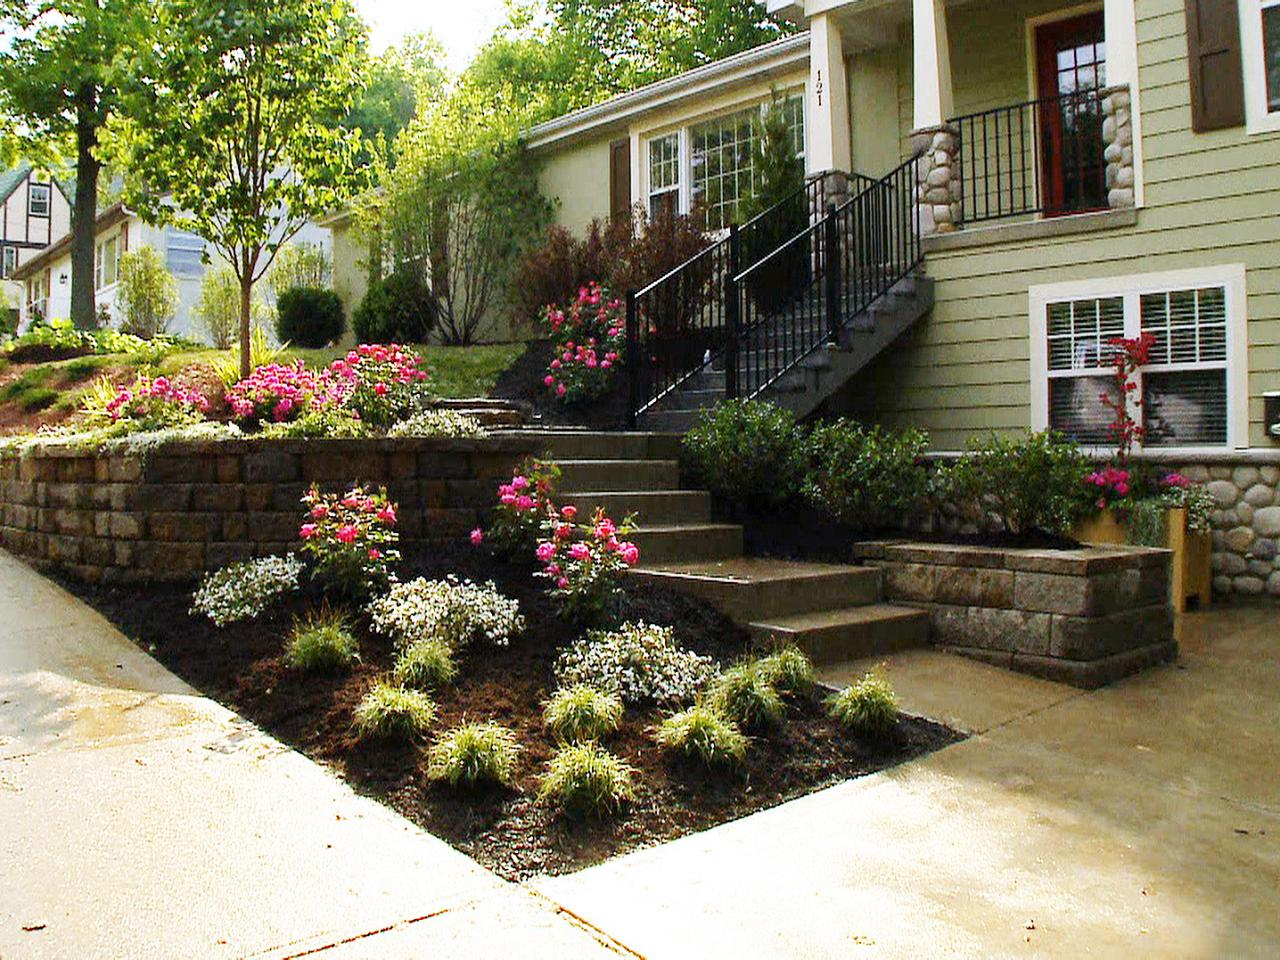 Inspiring Landscaping Ideas That Create Beautiful and ... on Backyard Landscaping Near Me id=98839